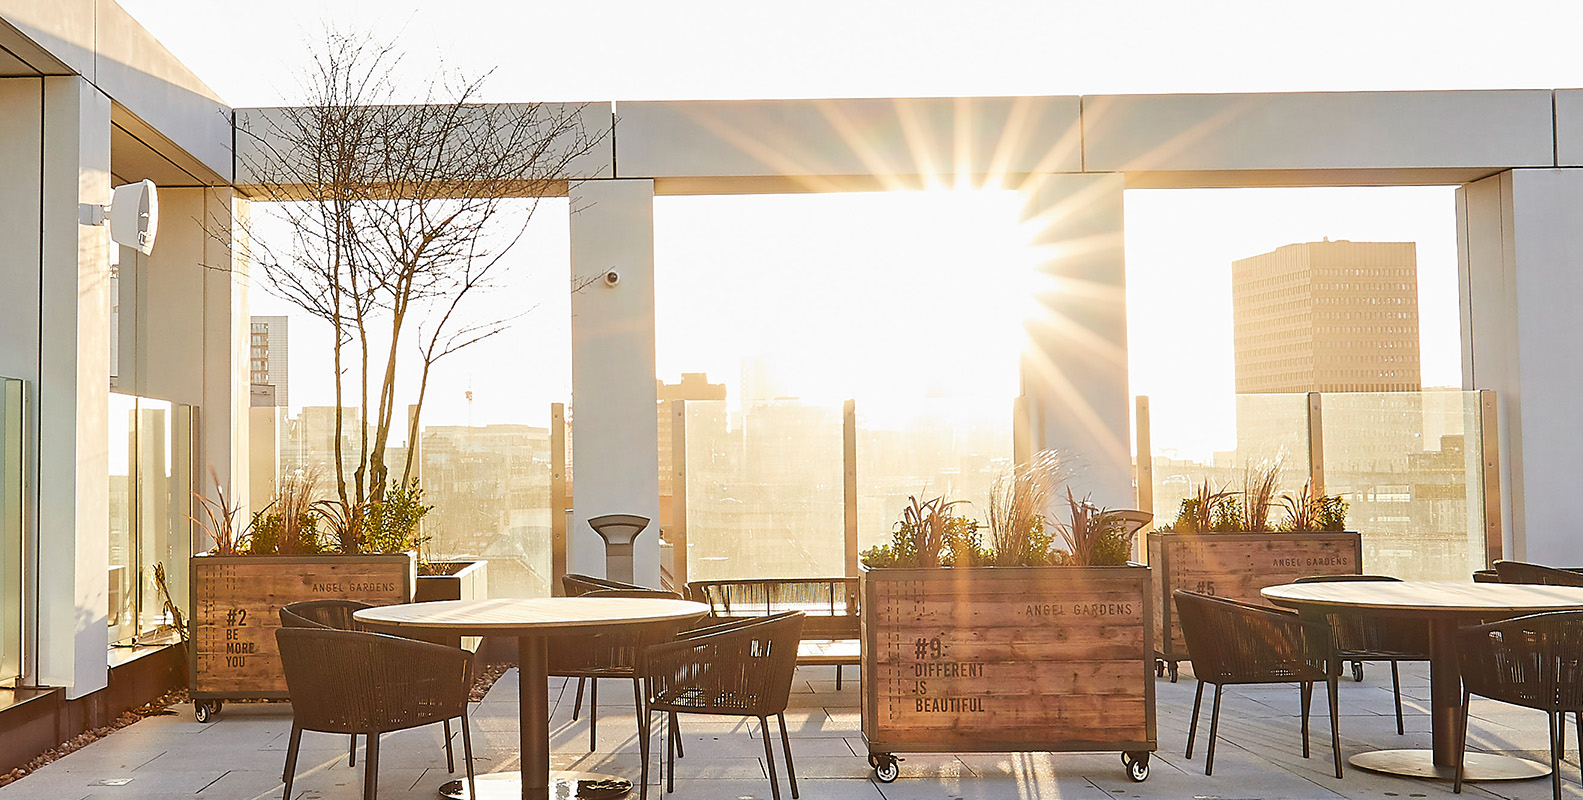 rooftop terrace with wooden seating and wooden furniture